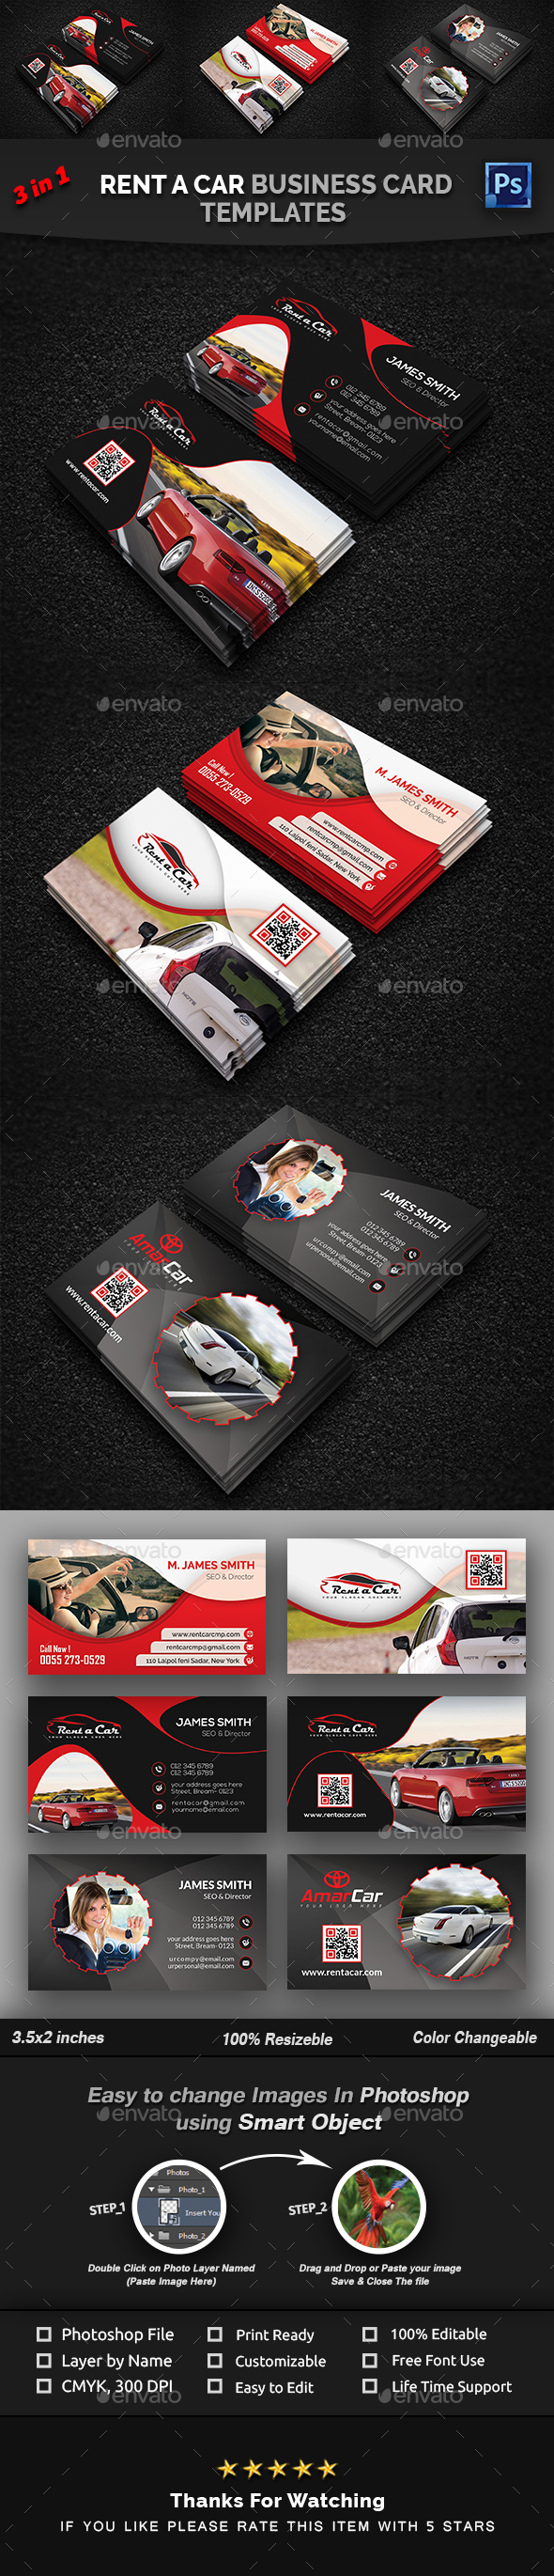 Rent a Car Business Card Bundle - Industry Specific Business Cards